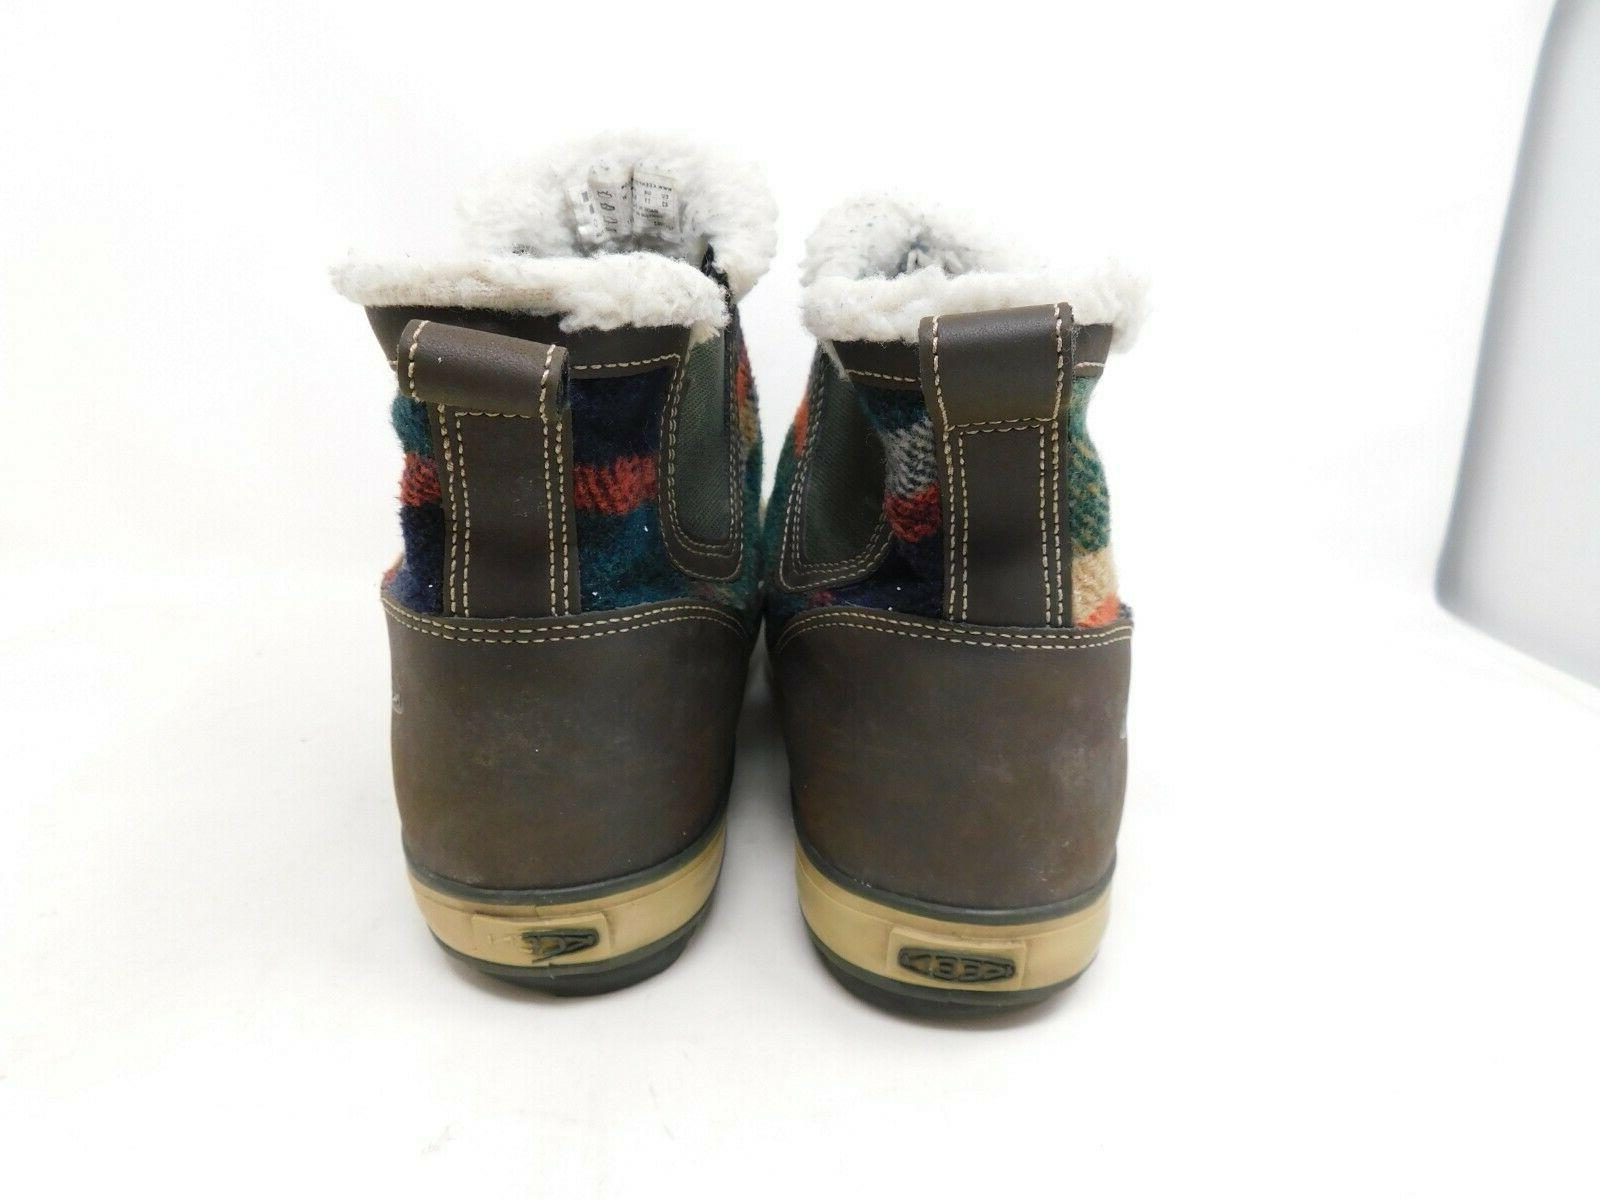 Keen Boots Womens Plaid Waterproof Insulated Ankle Snow